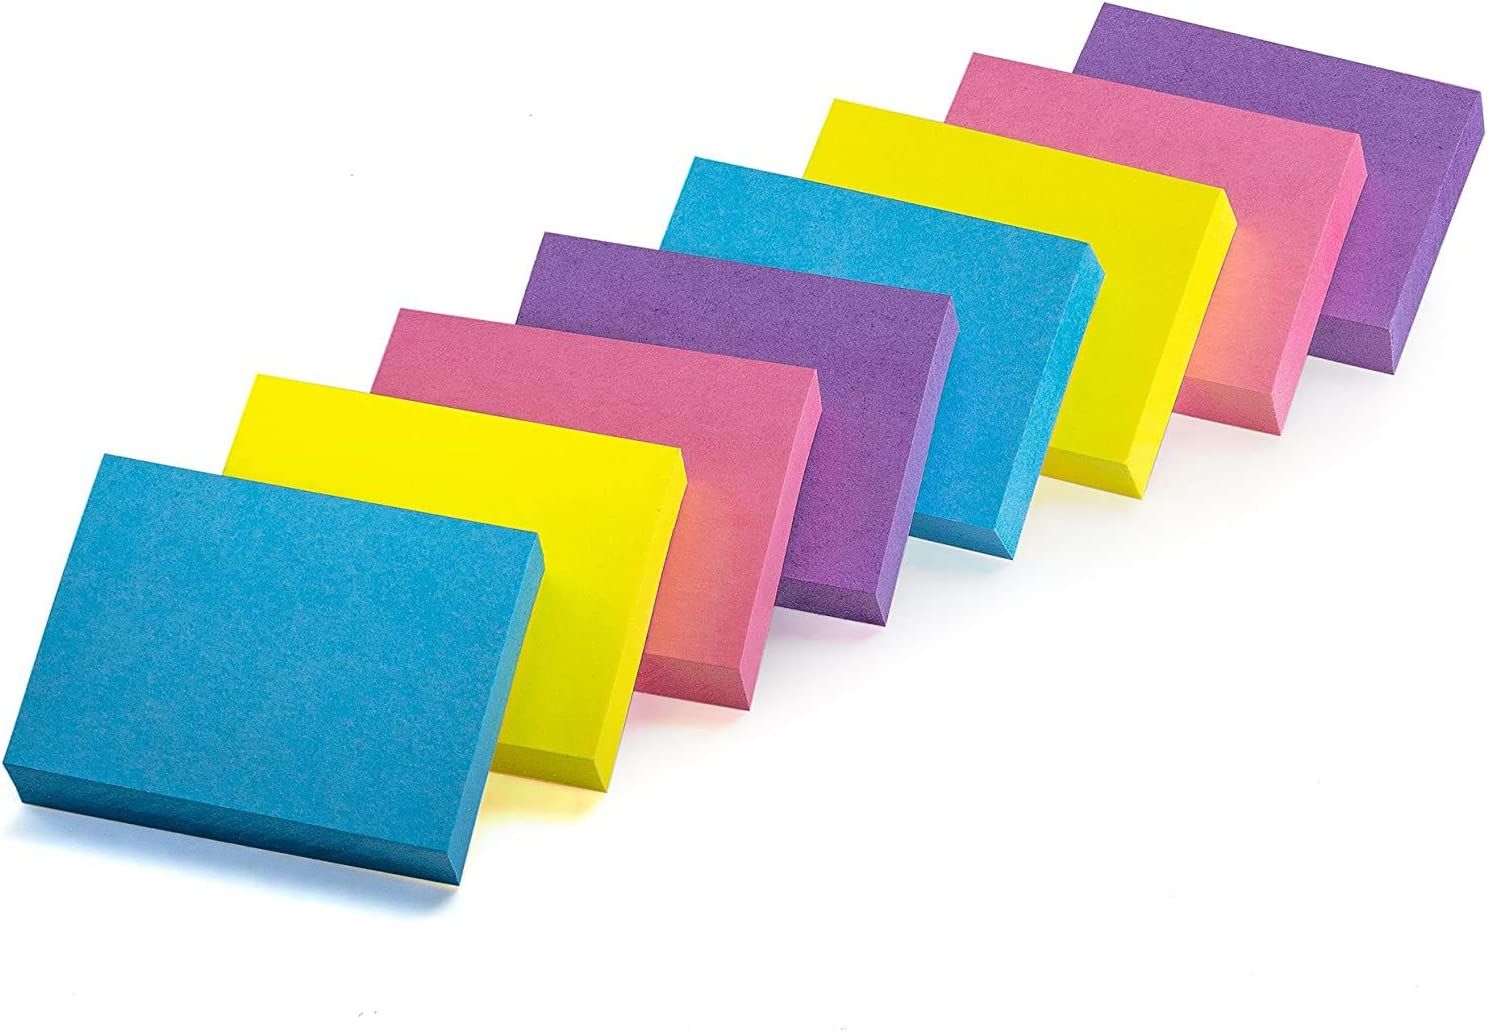 Sticky Notes, Mini Self-Stick Memo Notes - Self Adhesive - 1 ½ X 2 Inches - 100 Sheets Per Pad, 24 Pads Per Pack - Premium Quality - for Home, Office, School (Extreme)